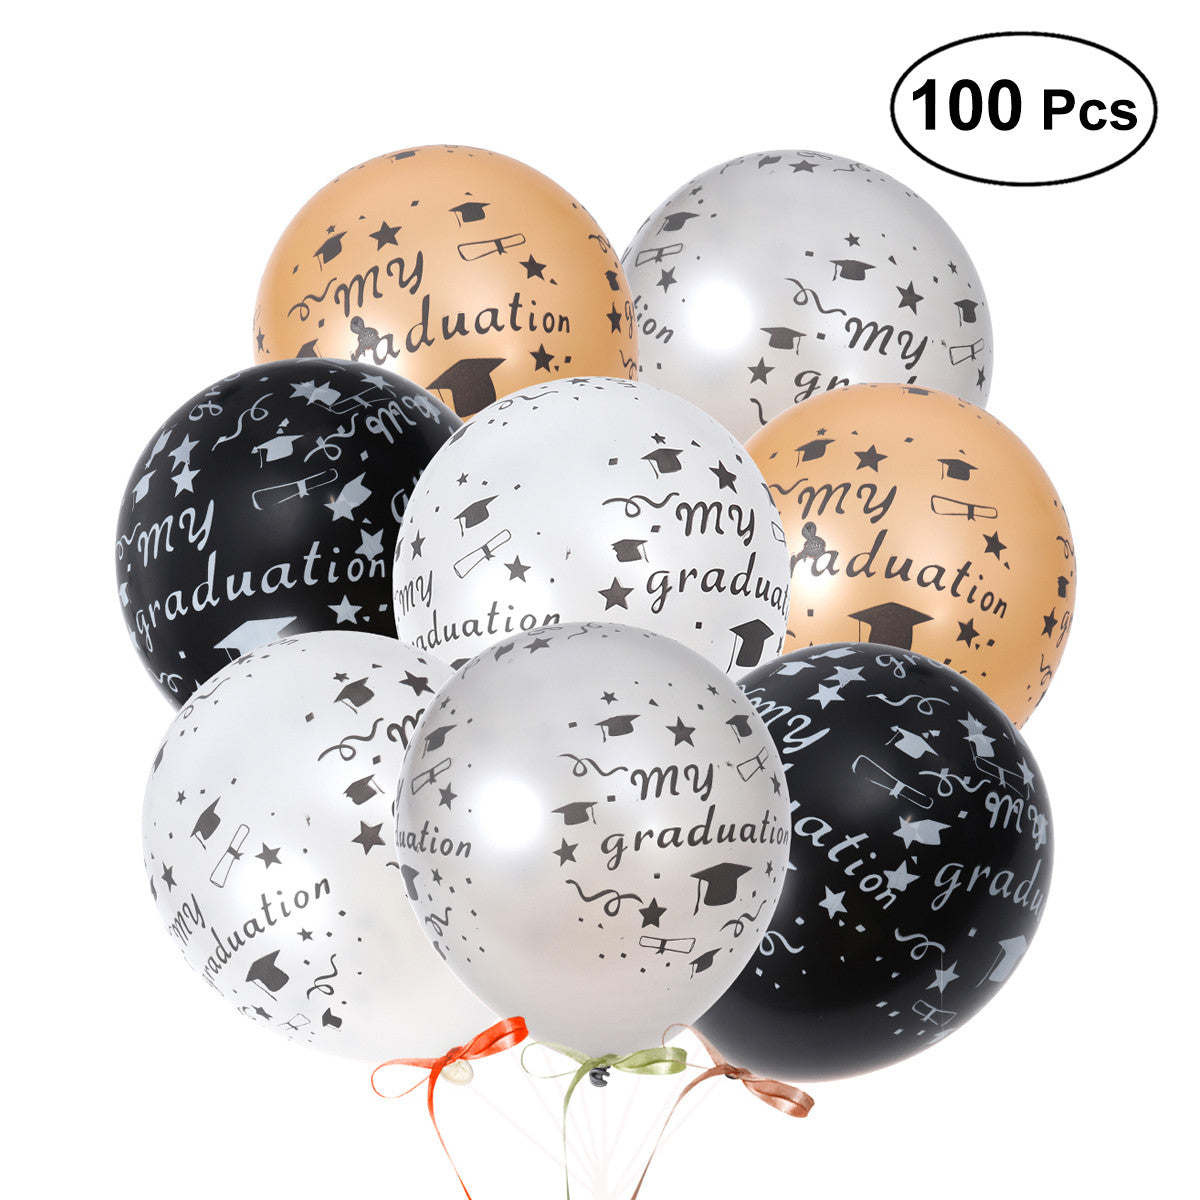 100Pcs 12 Inch Latex Rubber Balloons for Graduation Party Decoration